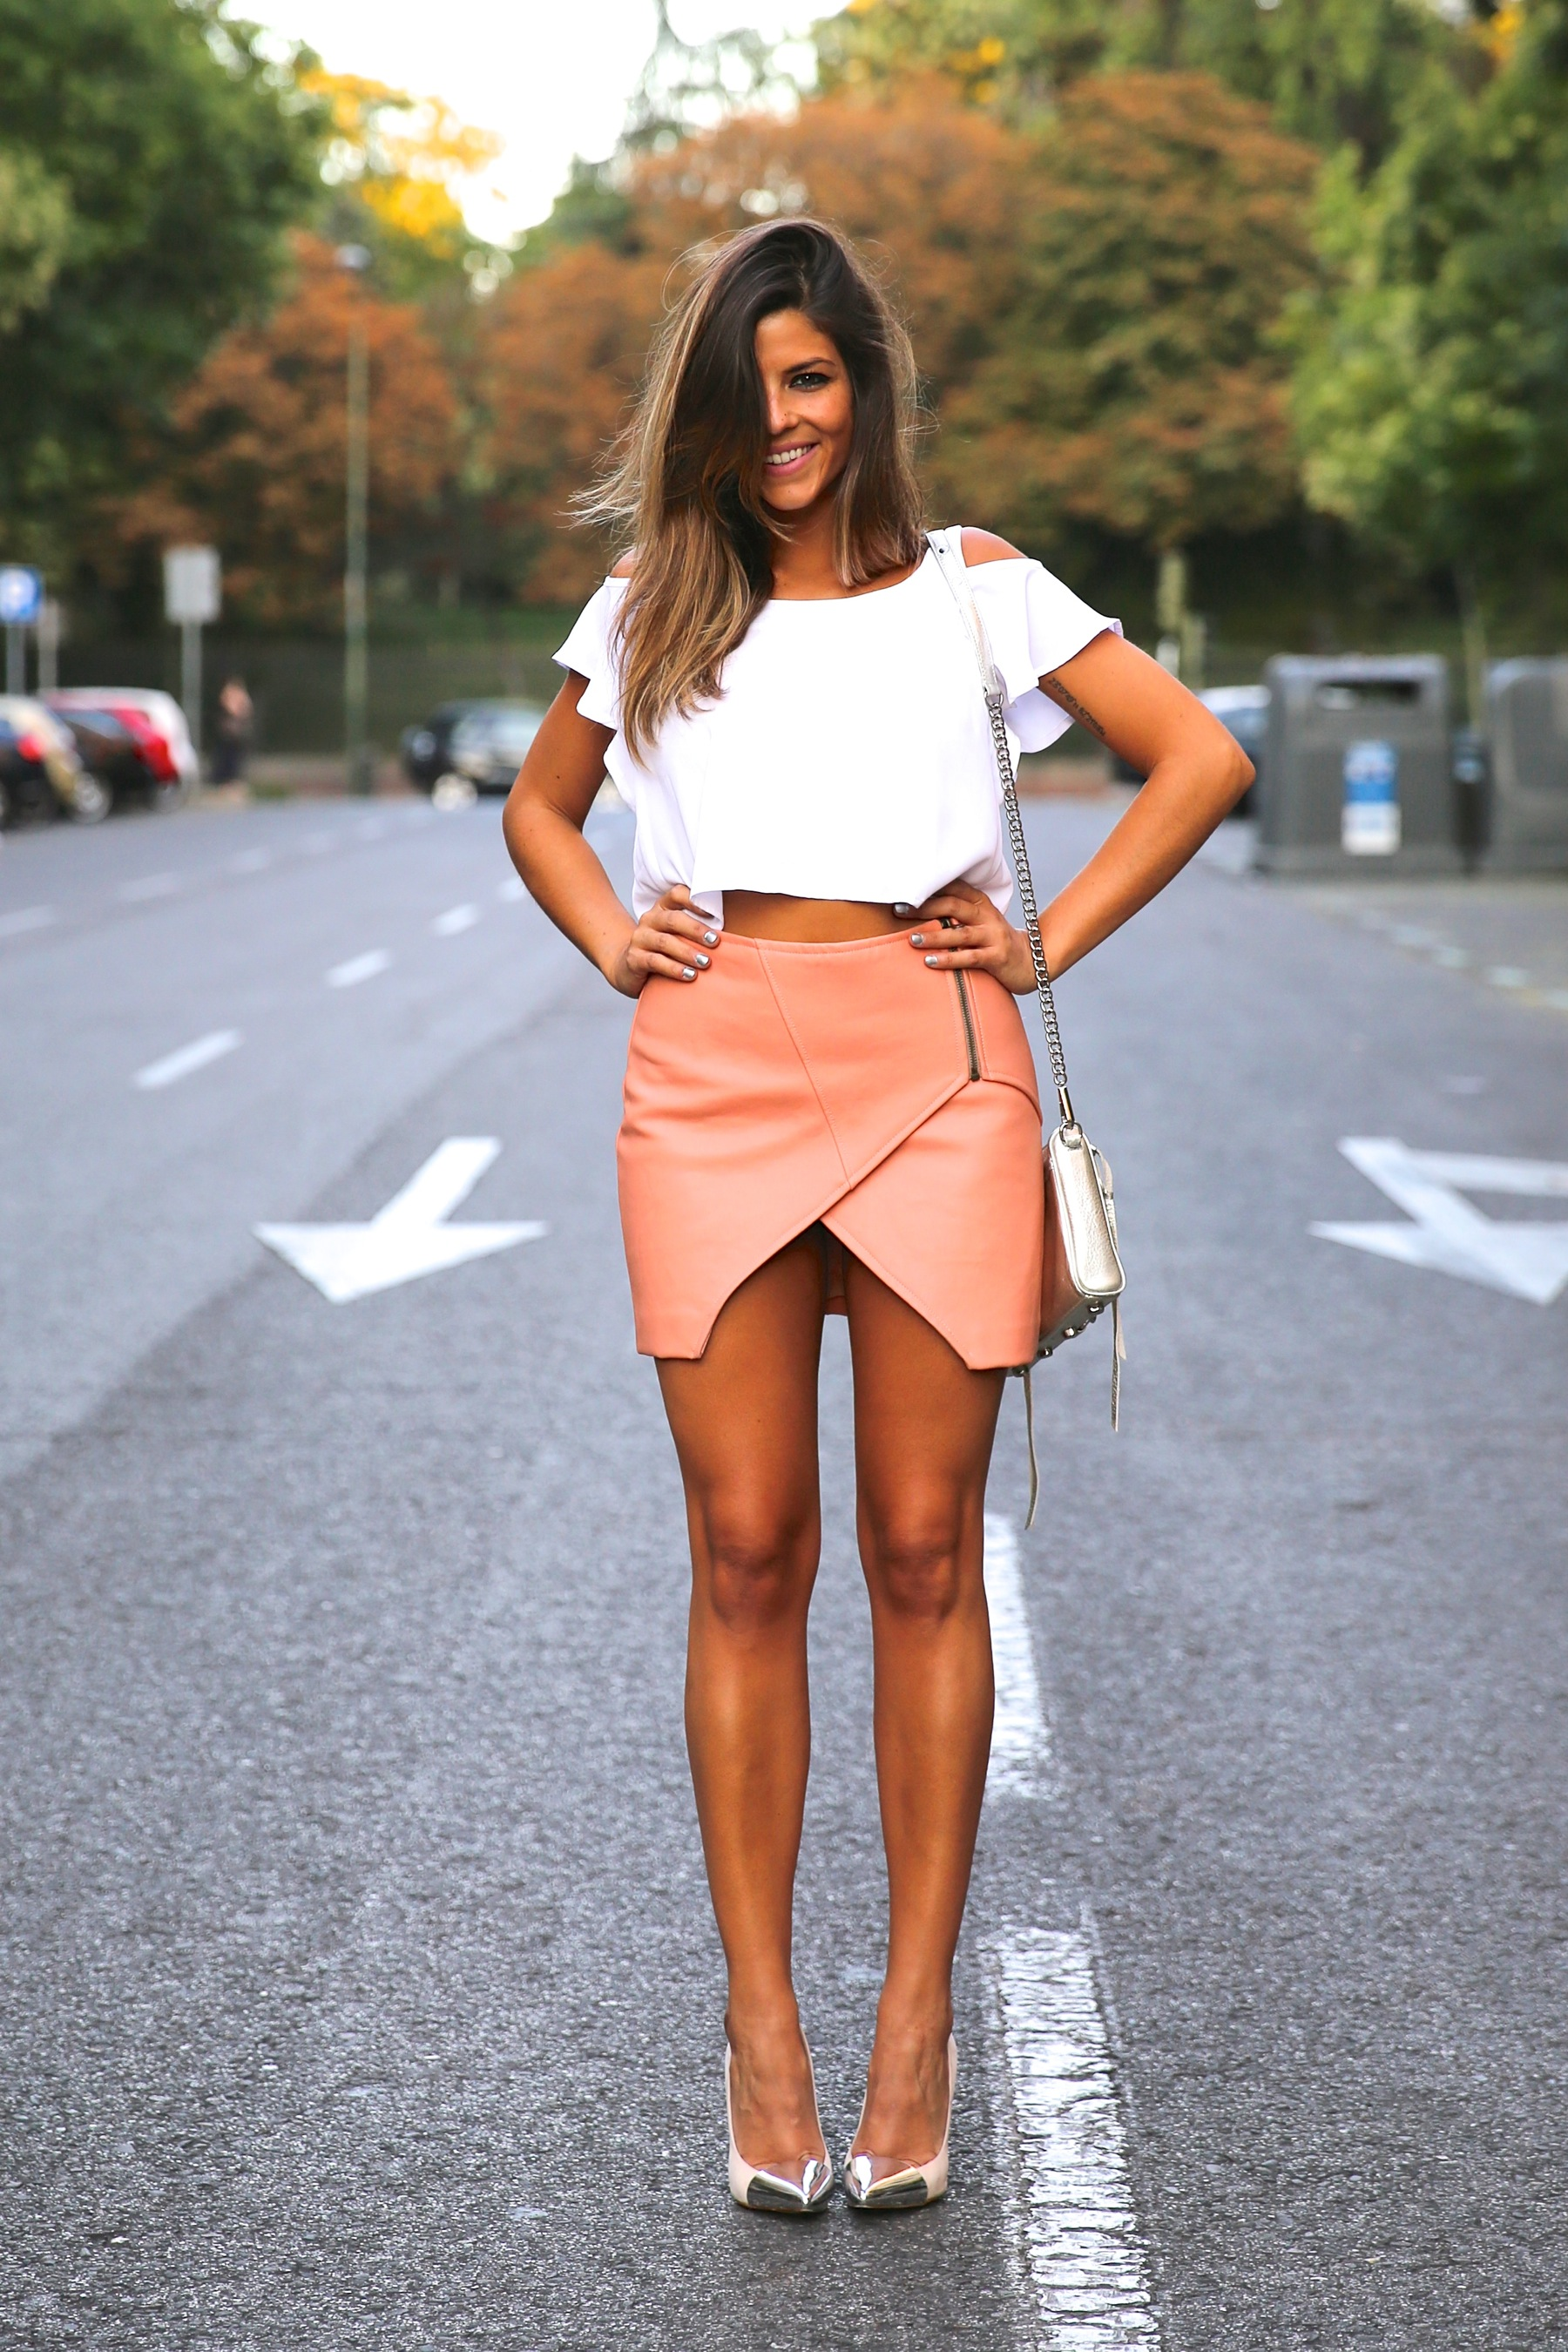 trendy_taste-look-outfit-street_style-ootd-blog-blogger-fashion_spain-moda_españa-madrid-silver_stilettos-punta_plata-estiletos-falda_coral-coral_skirt-top-8